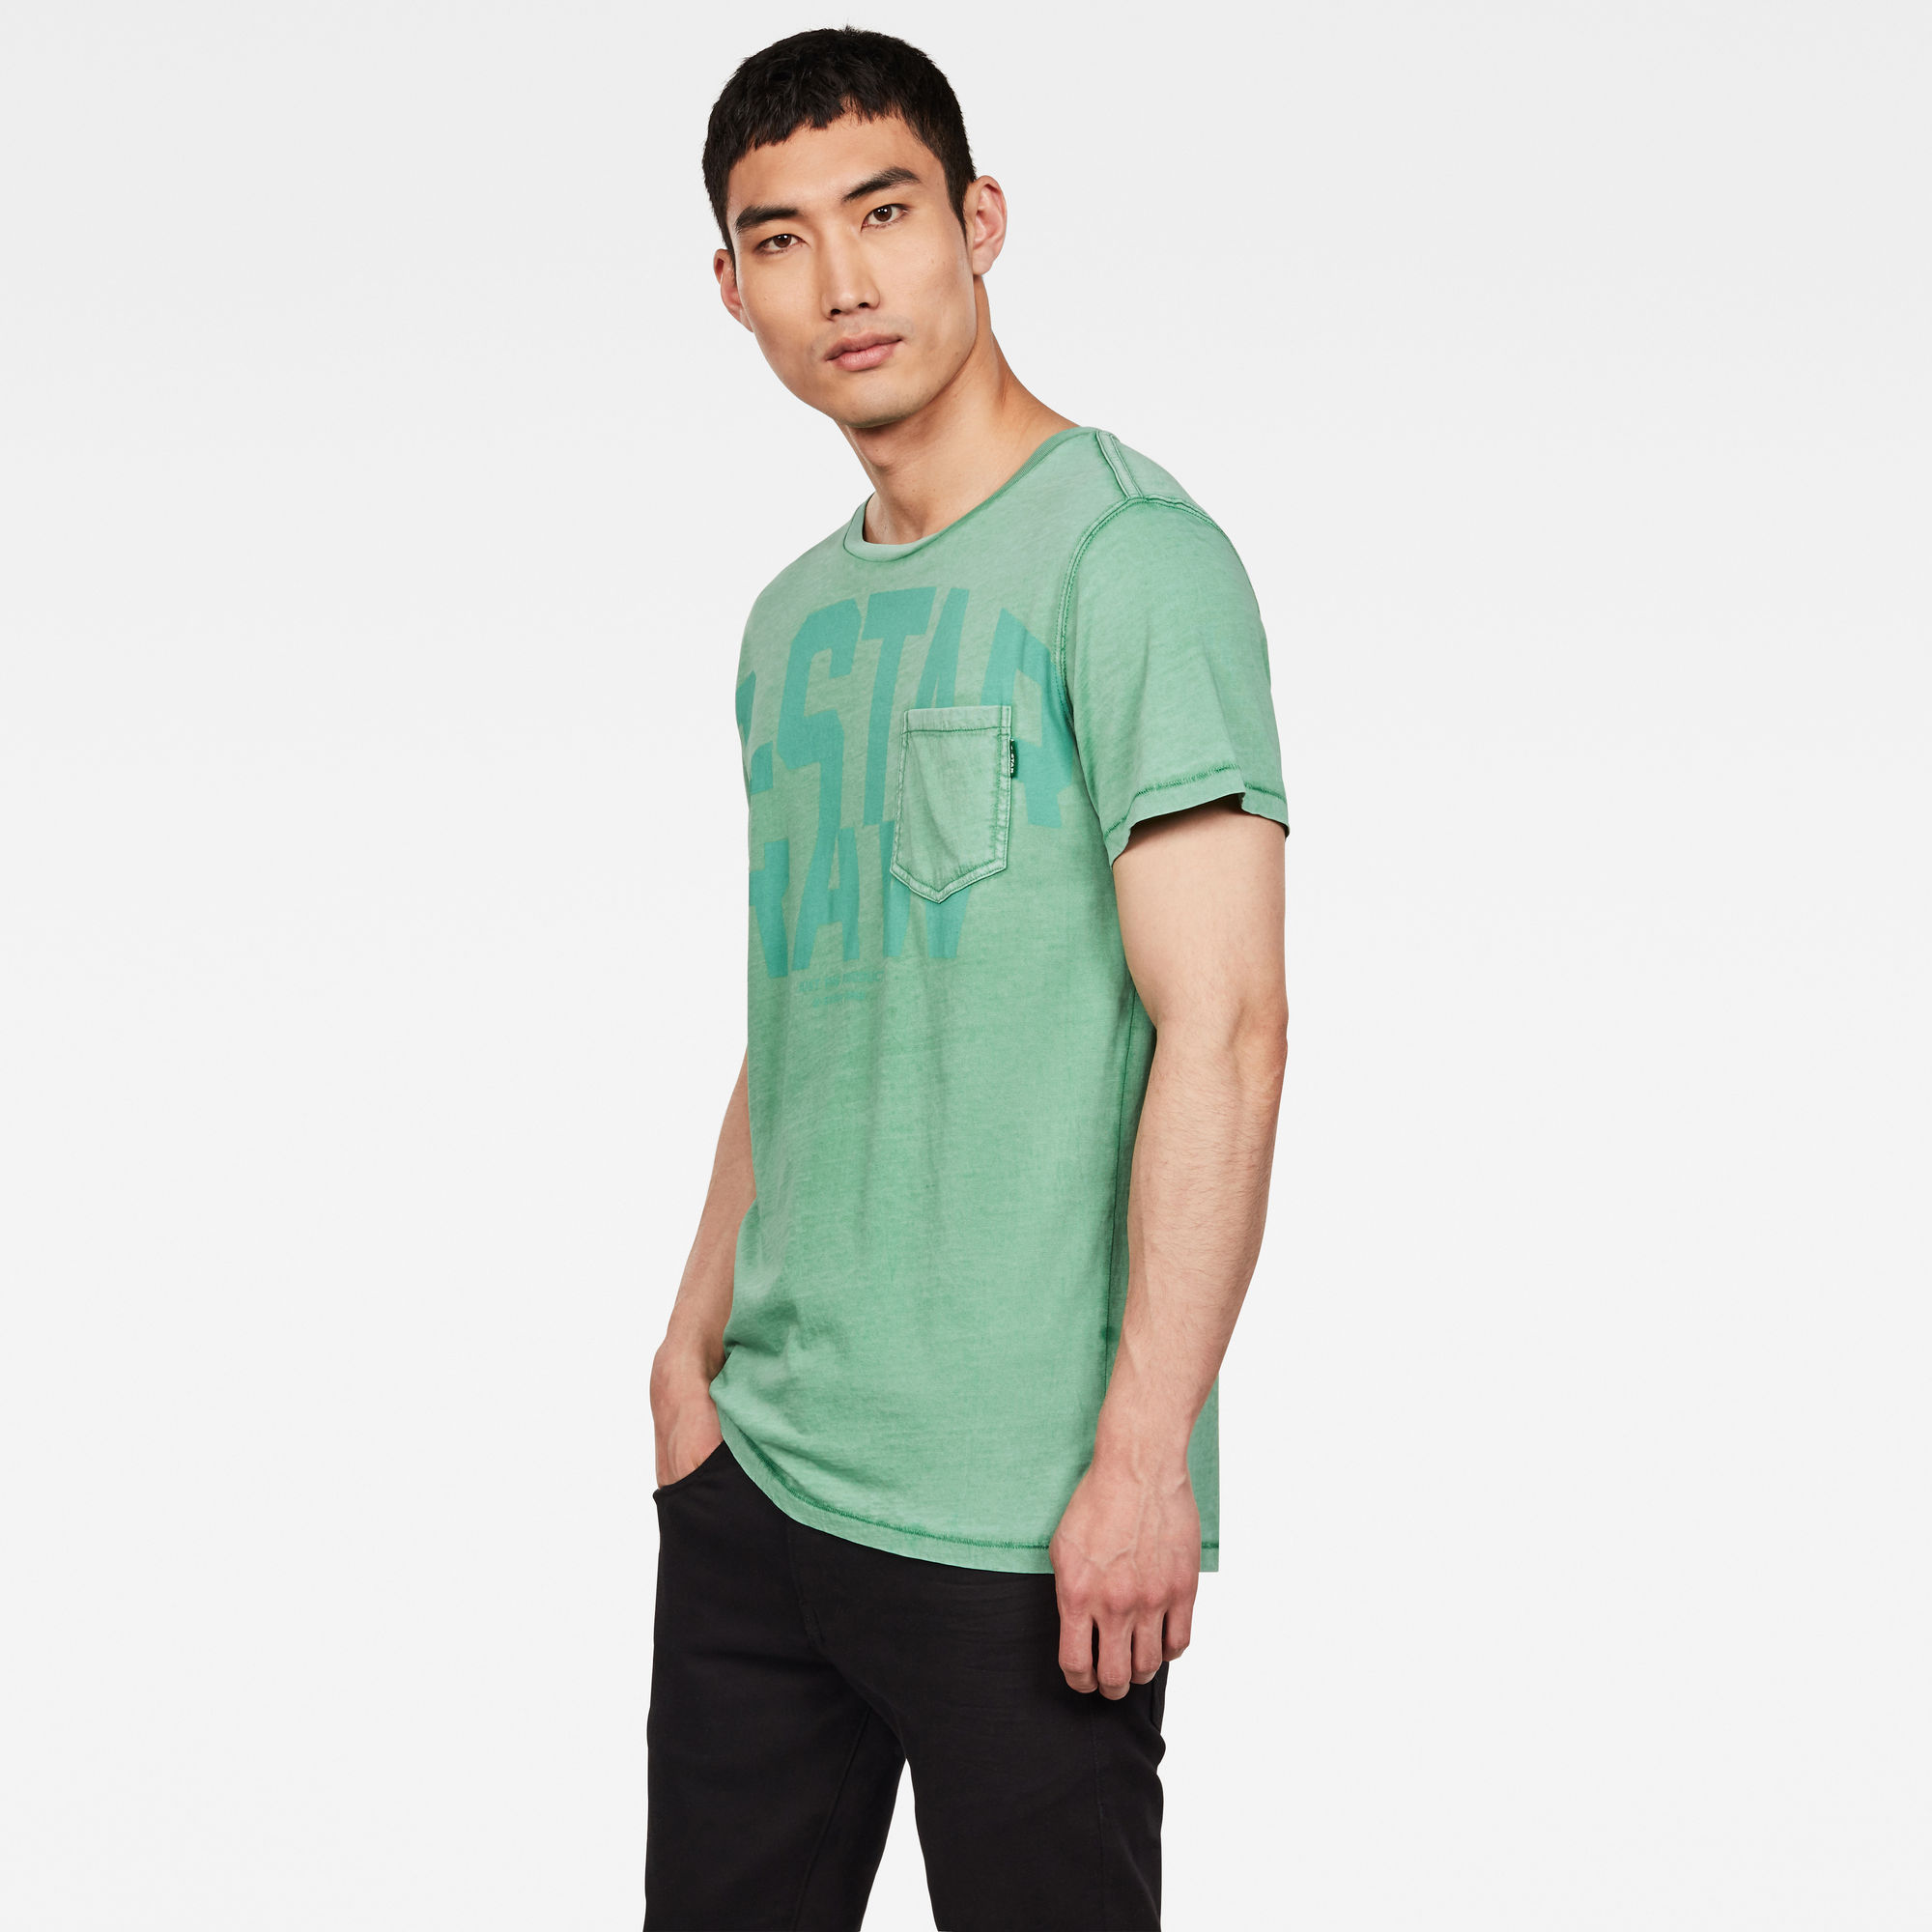 G-Star RAW Graphic 15 T-shirt